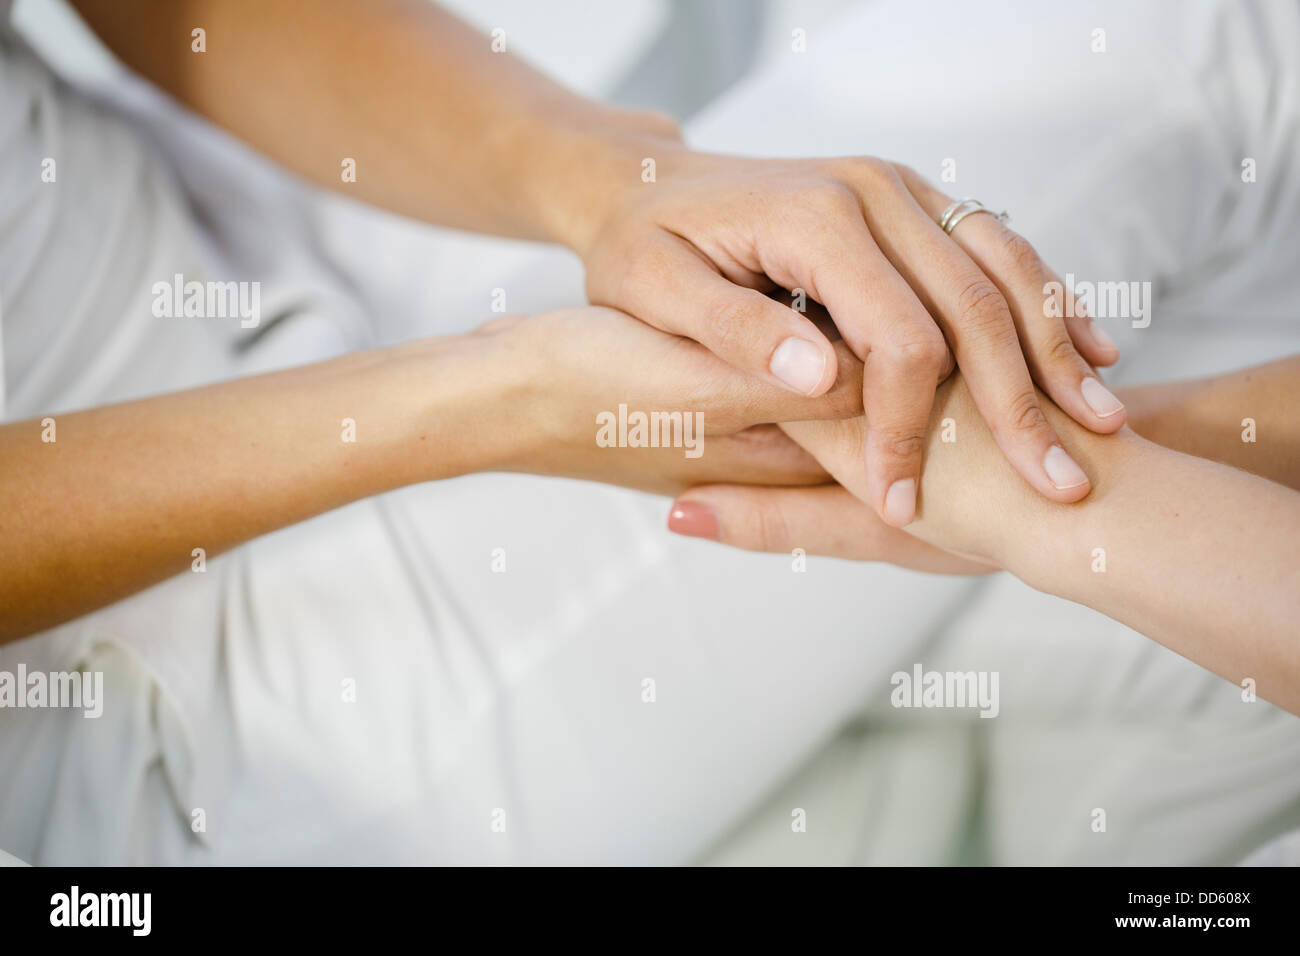 Doctor's Visit, Holding Hands, Close-up Stock Photo